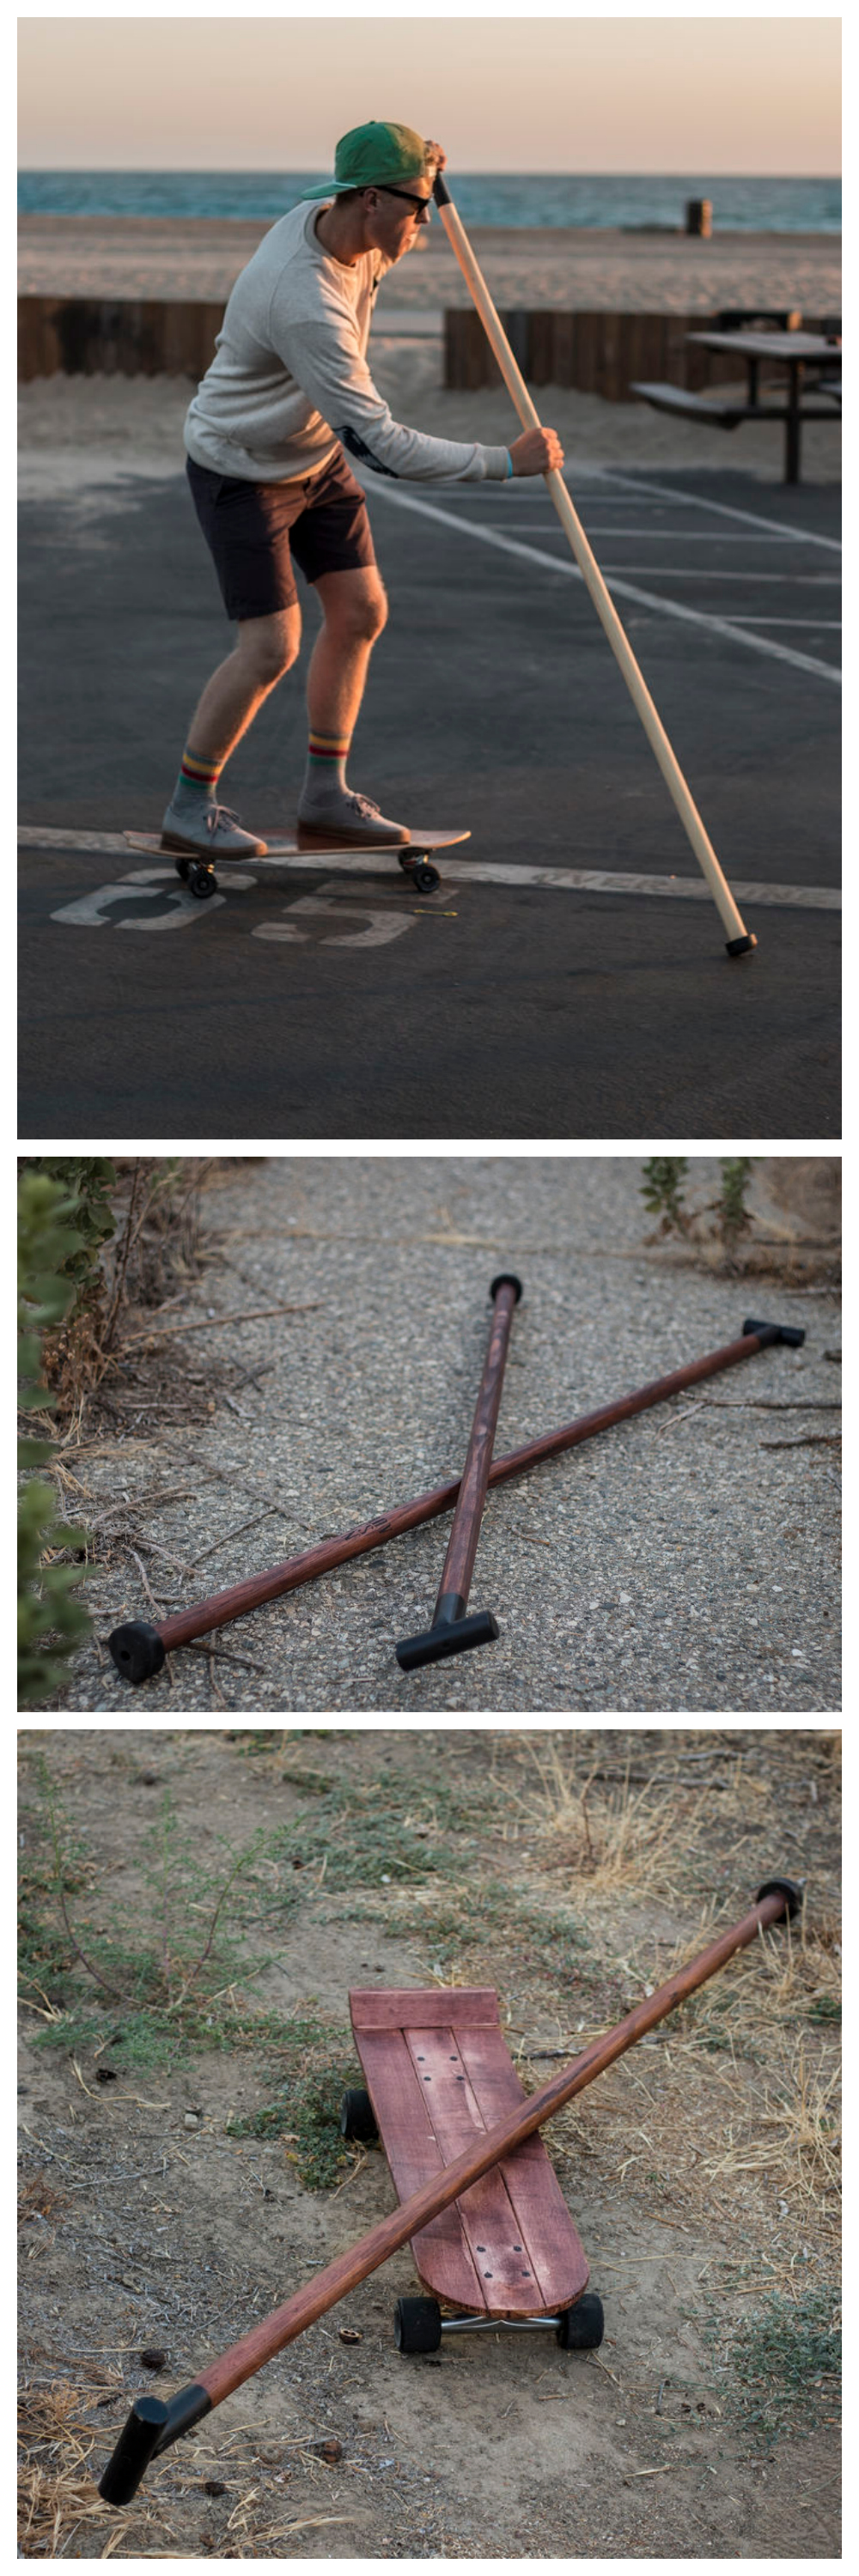 Land Paddle #outdoors #summer #activity #woodworking #skateboard #longboard